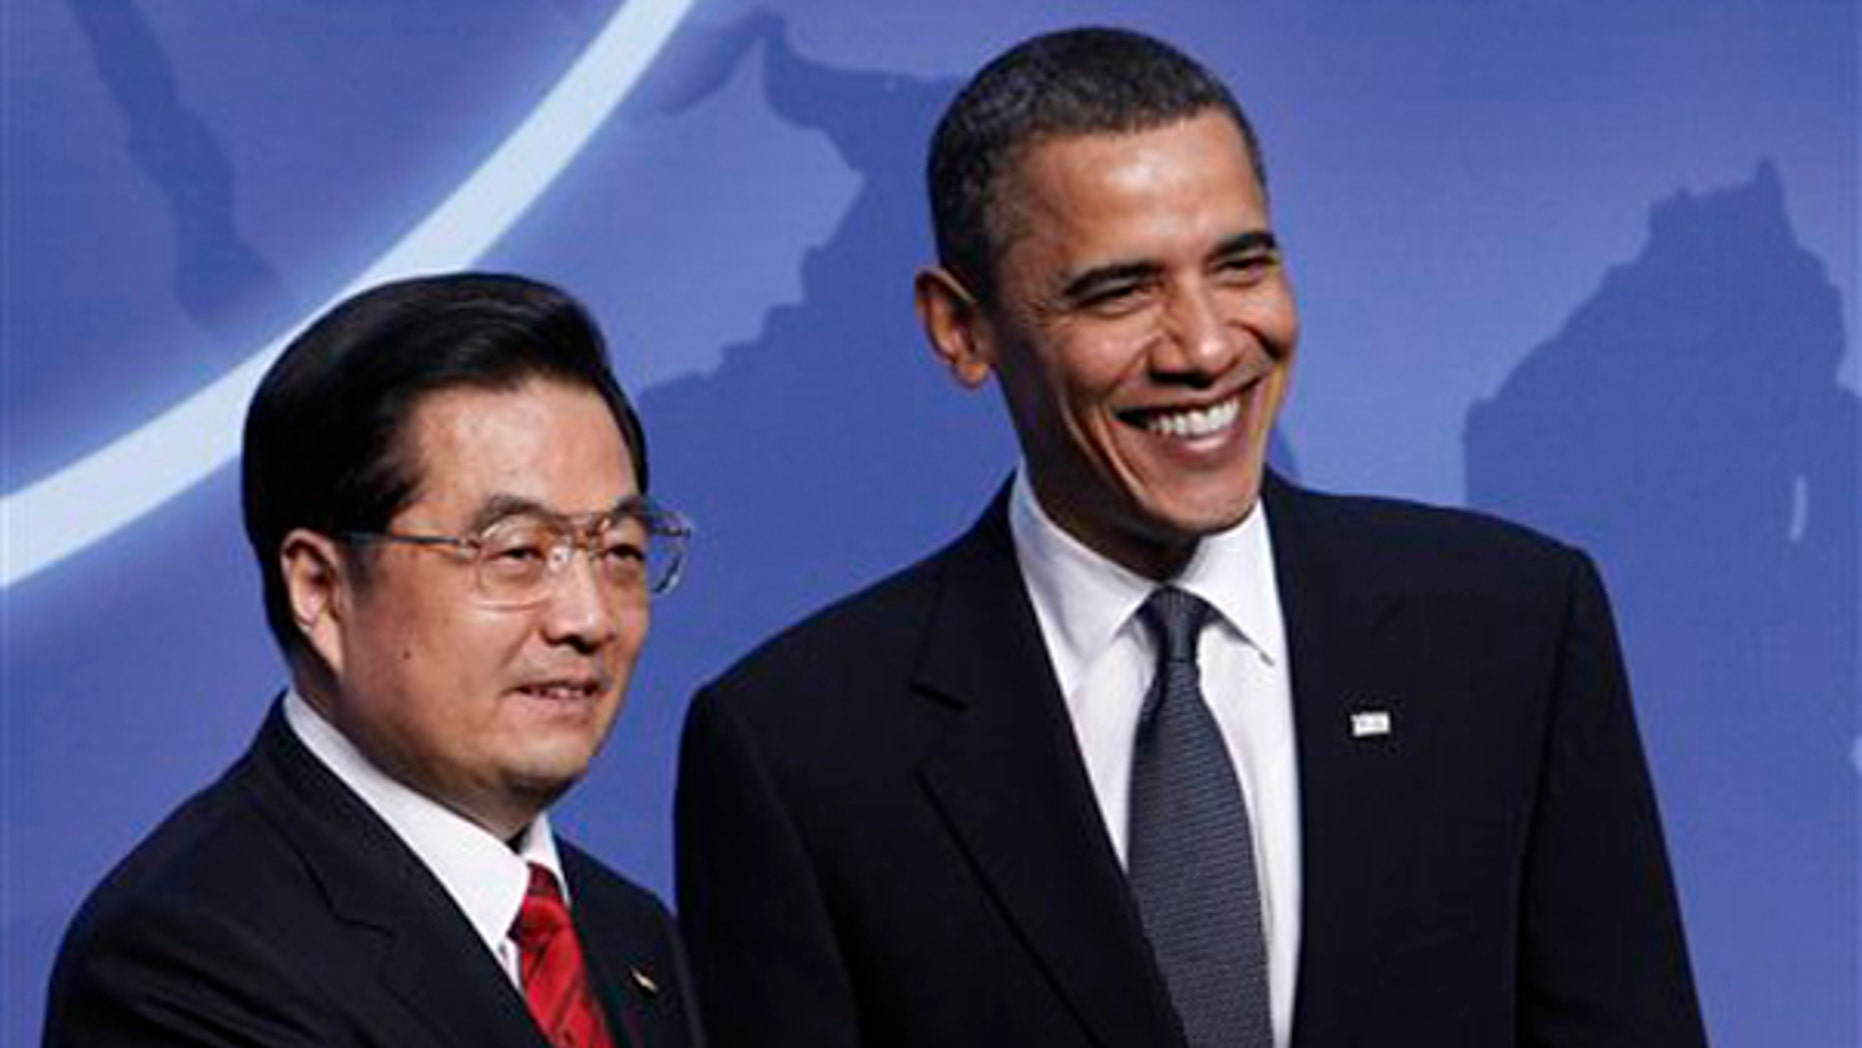 President Obama greets Chinese President Hu Jintao at the Nuclear Security Summit in Washington April 12. (AP Photo)